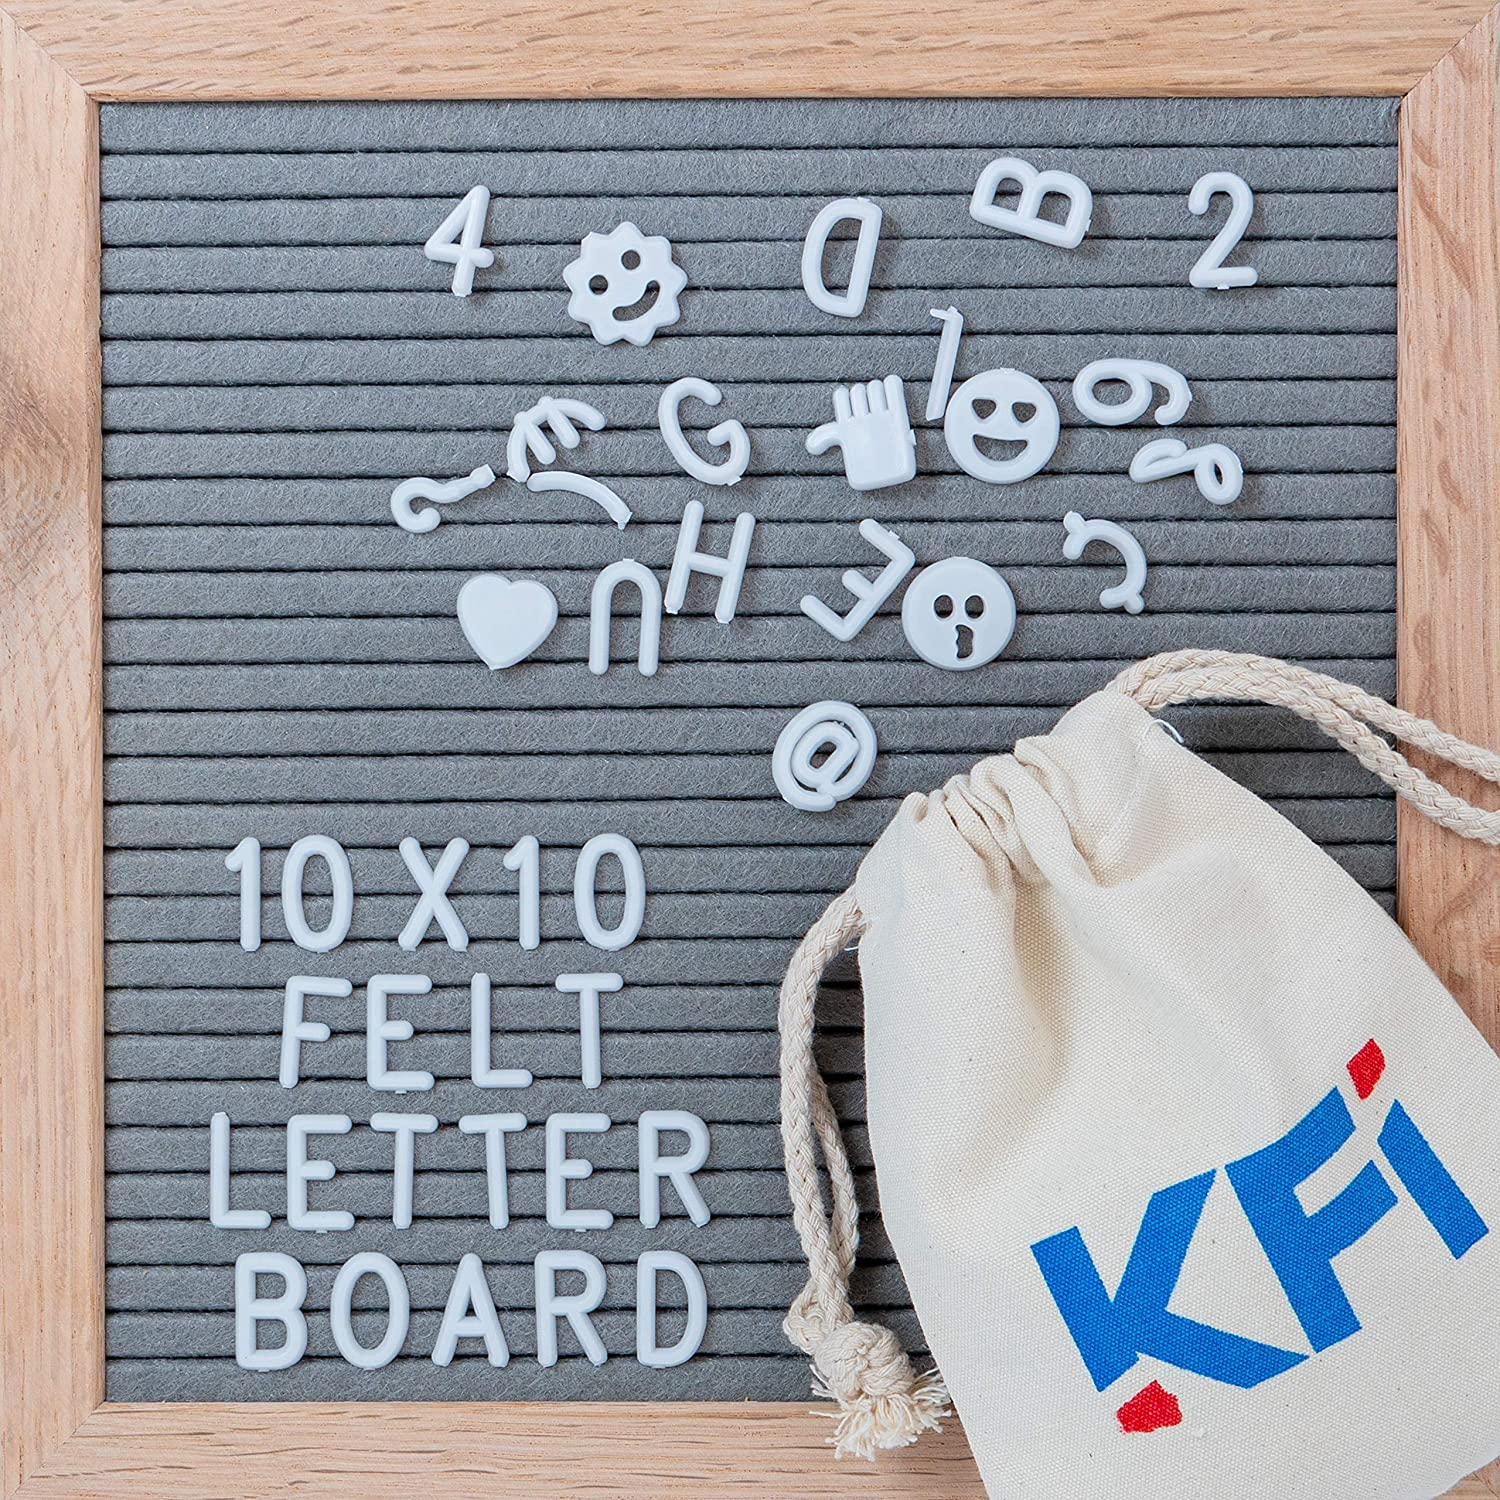 Changeable Letter Board with Wooden Easel - Felt Letter Board 10x10 340 Letters/Numbers/Characters/Emojis/Wall-Mount, Rustic Oak Frame, Drawstring Letter Pouch, Great Substitute for White Boards KF Industries USA LLC.